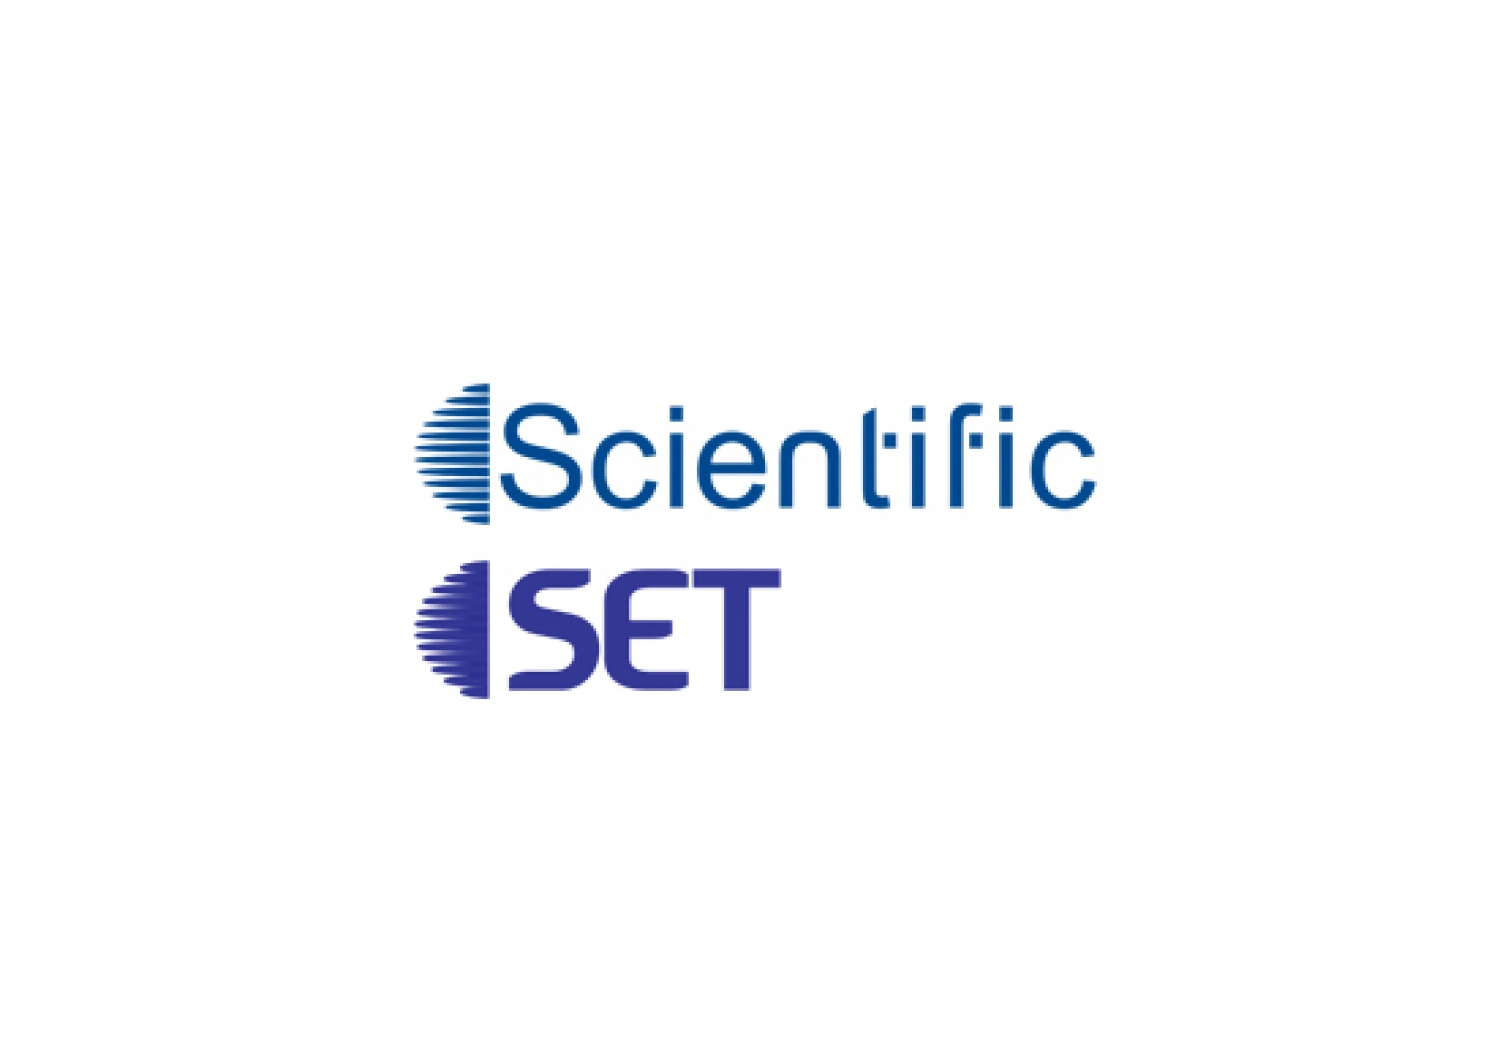 SCIENTIFIC SET